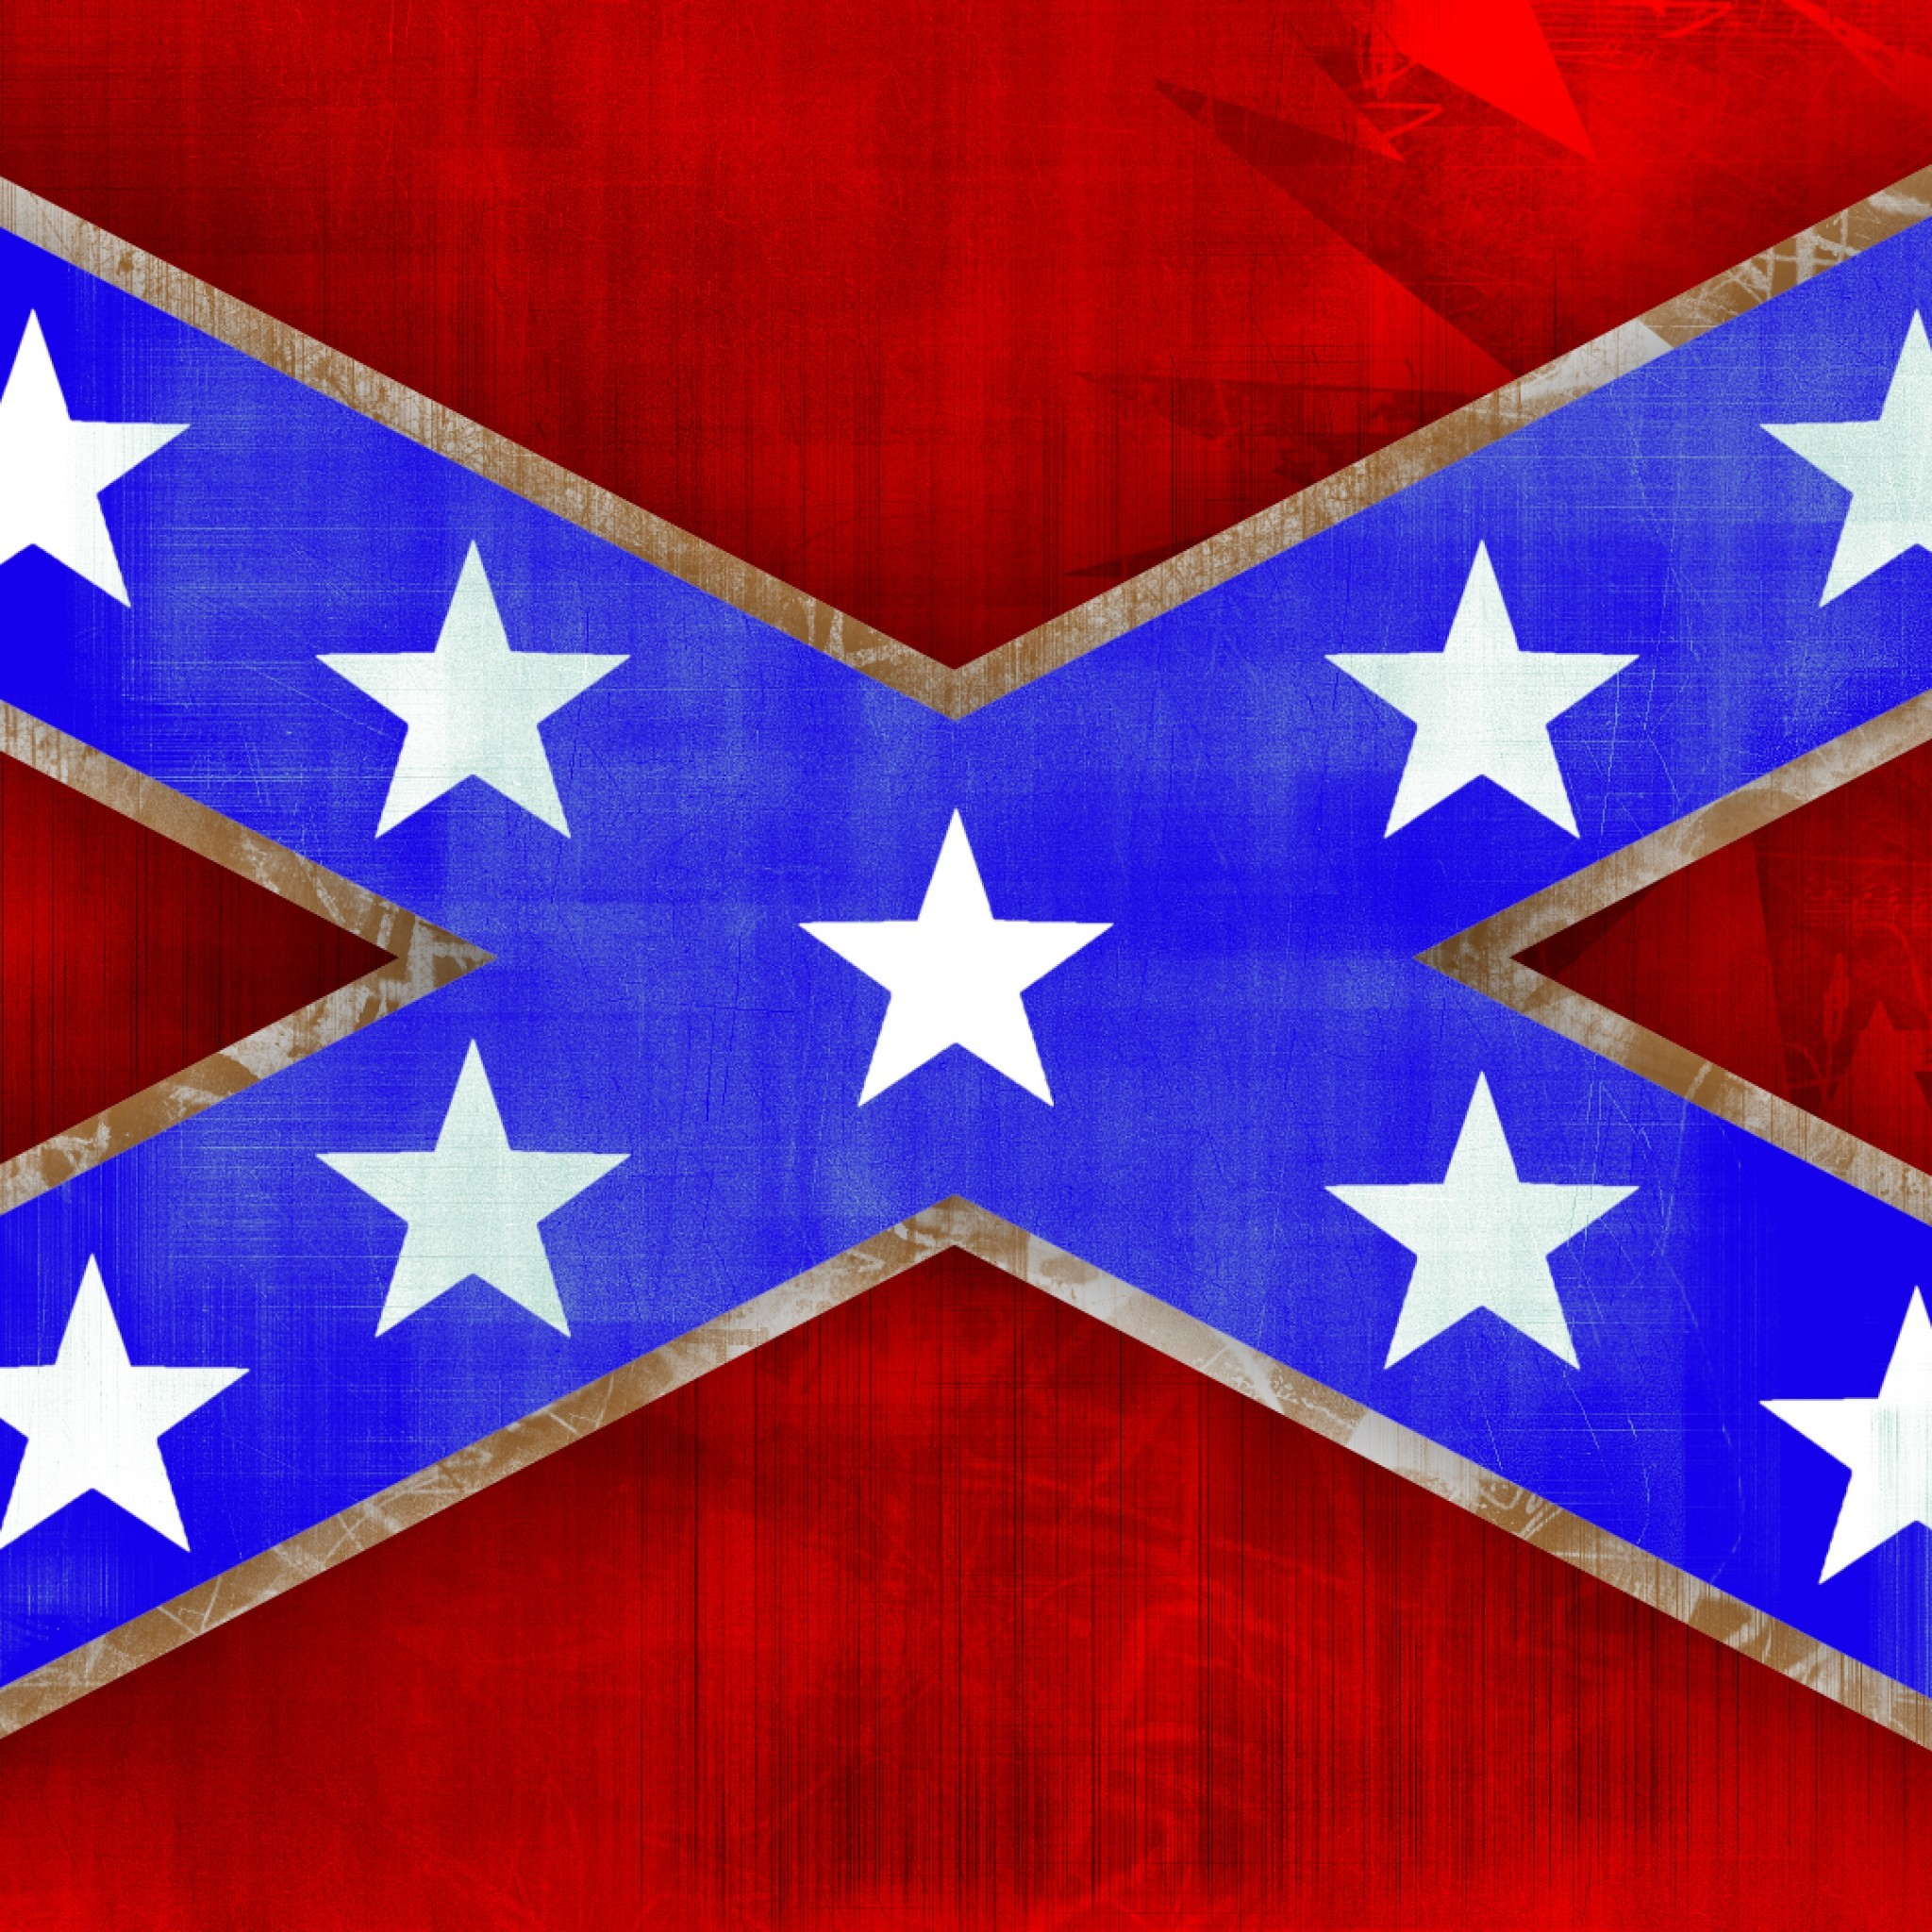 2048x2048 Preview wallpaper confederate flag, south carolina, flag, texture